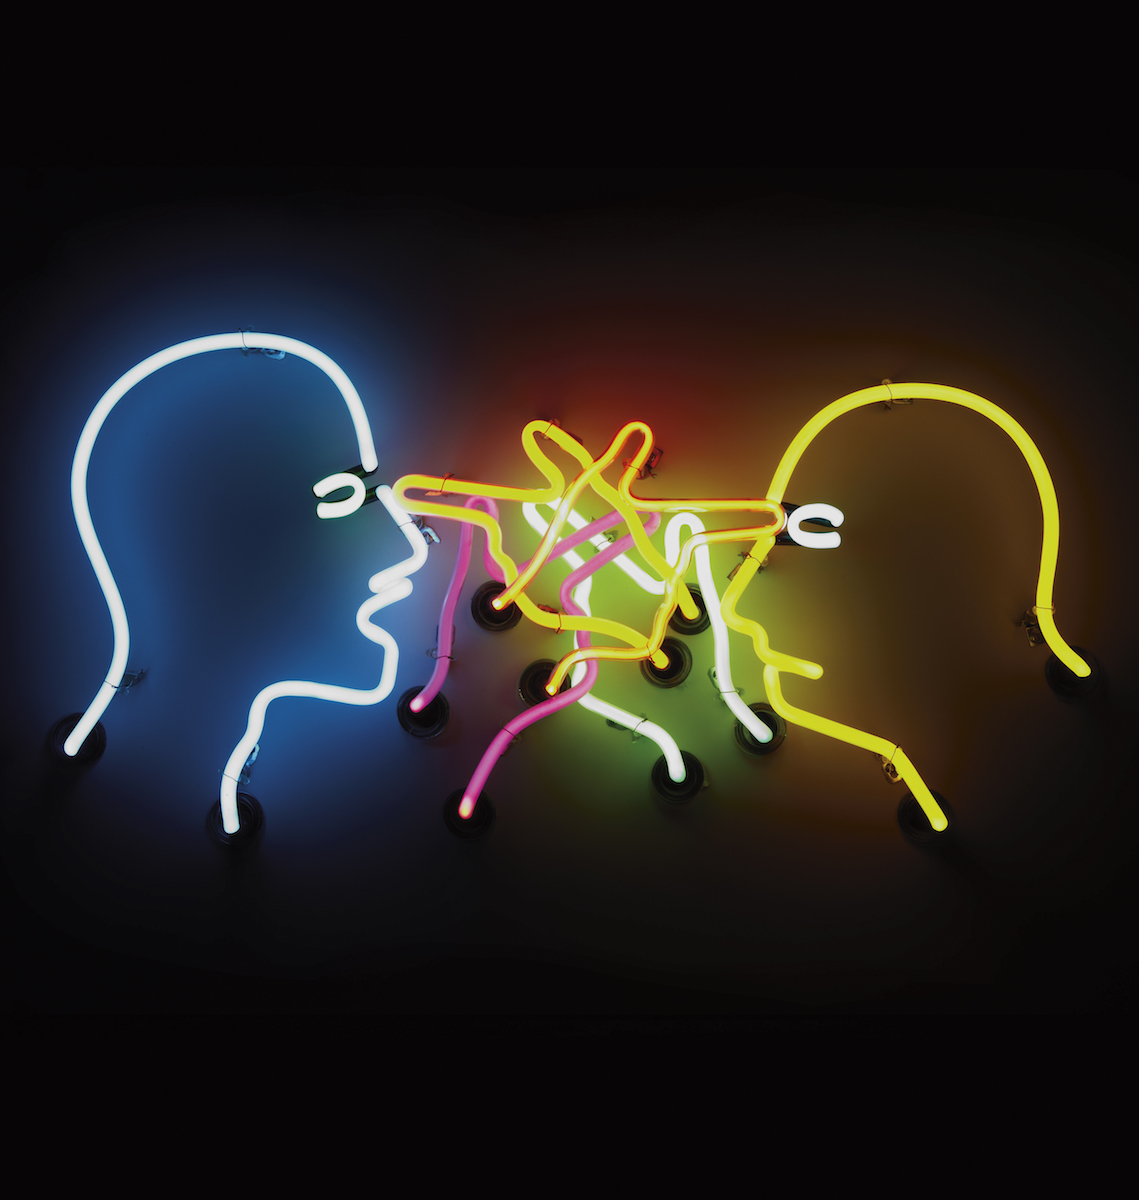 Bruce Nauman, Double Poke in the Eye II, 1985. Courtesy of the artist and Igal Ahouvi Art Collection. Photo: Elad Sarig.